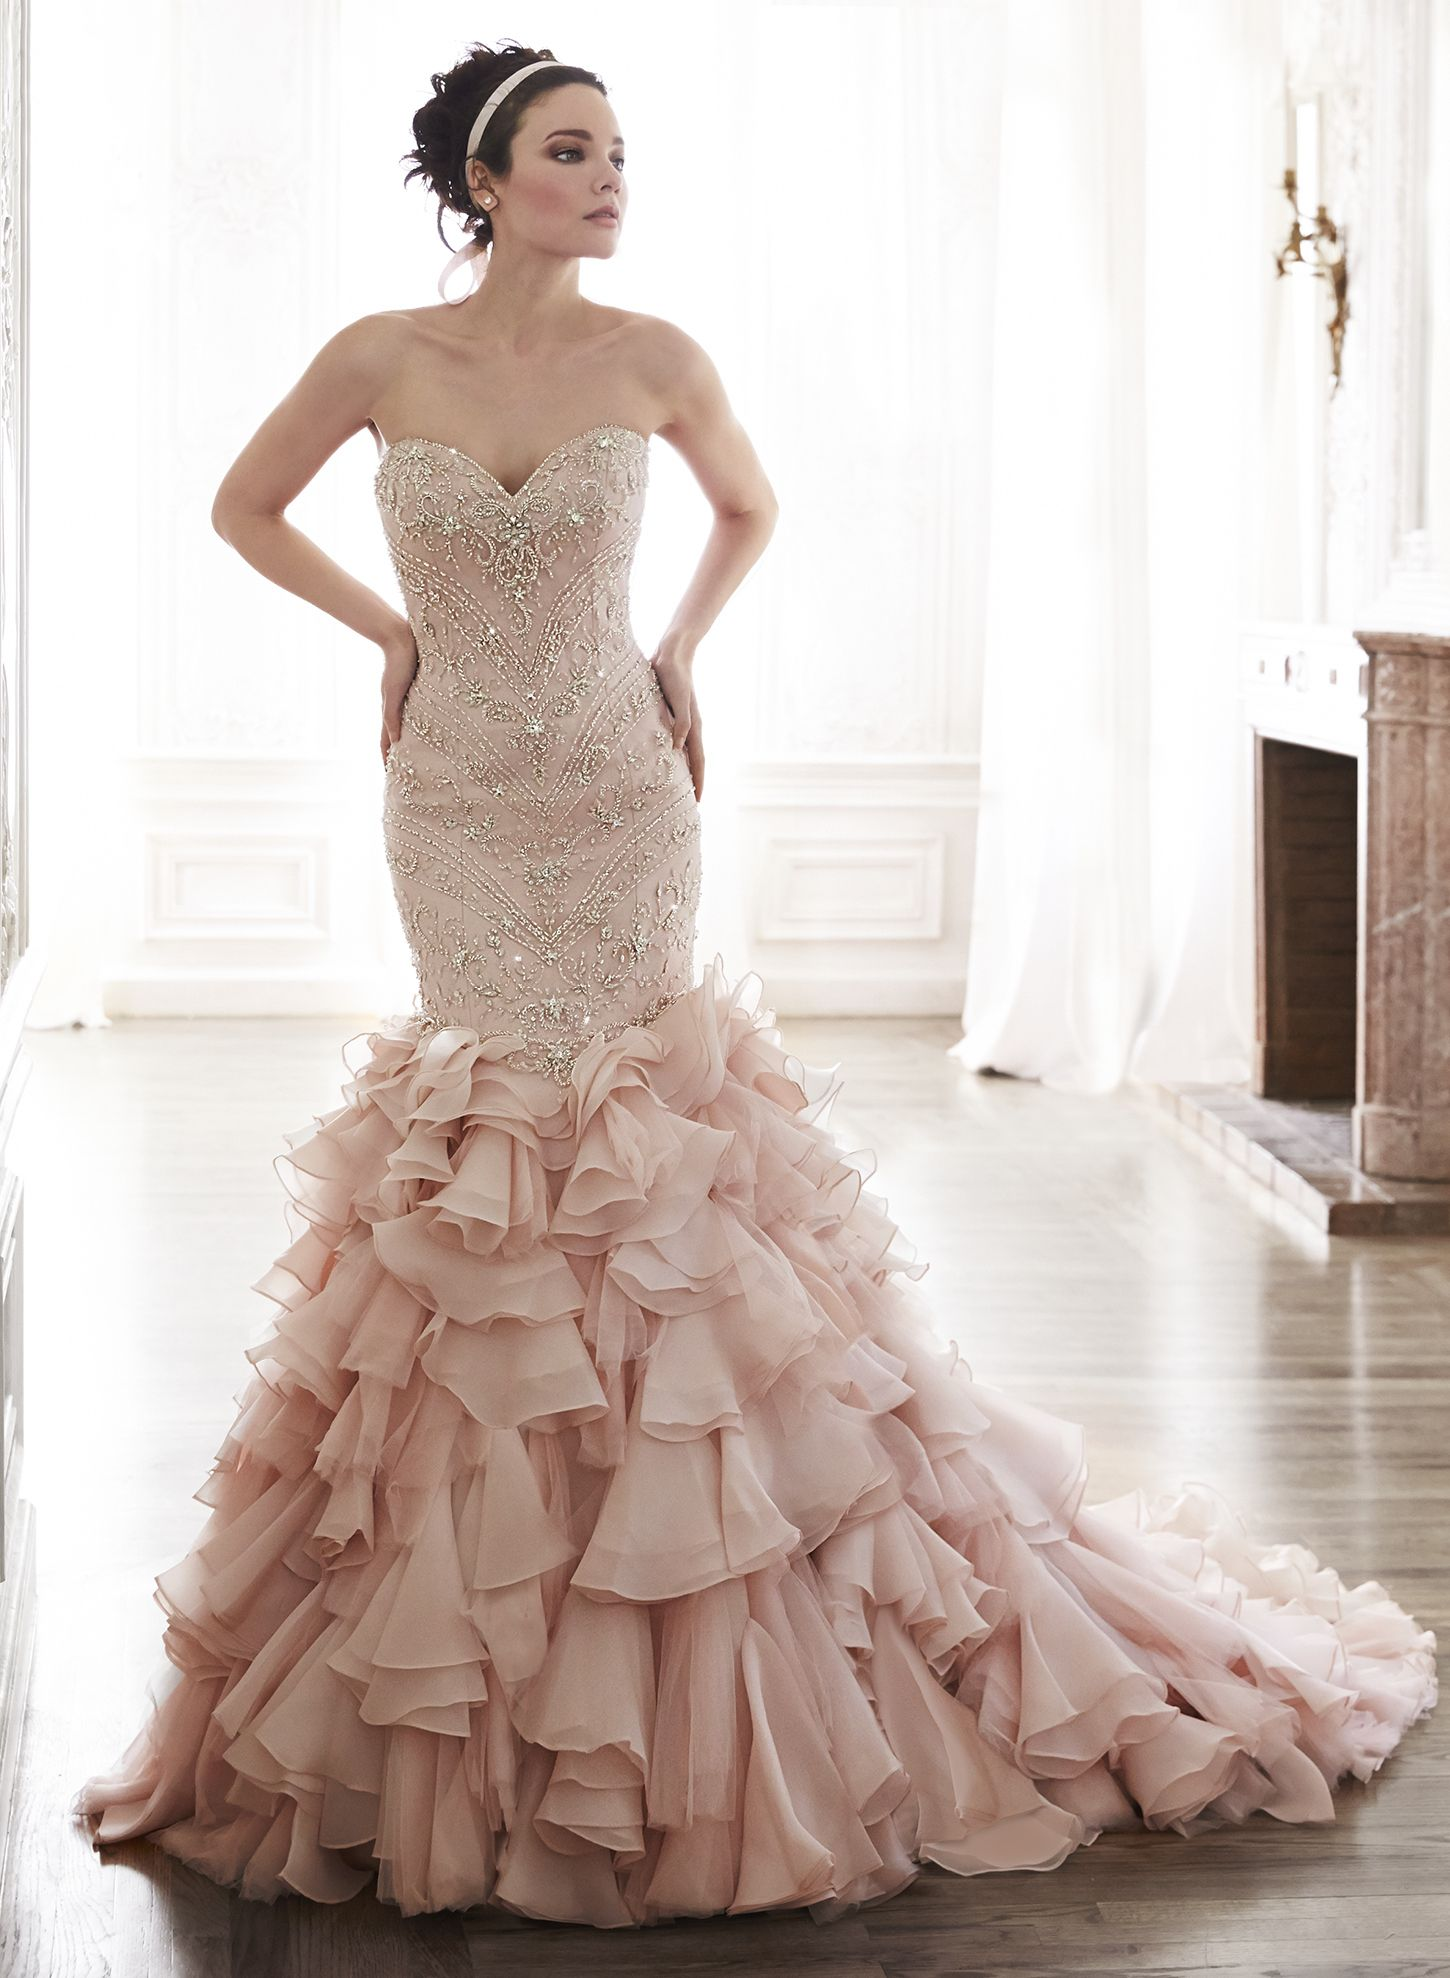 Serencia - by Maggie Sottero  petros06 PLEASE PLEAS PLEASE wear this!!! If  I ever get married this is it!!!!! LOVE! 35456980dedd